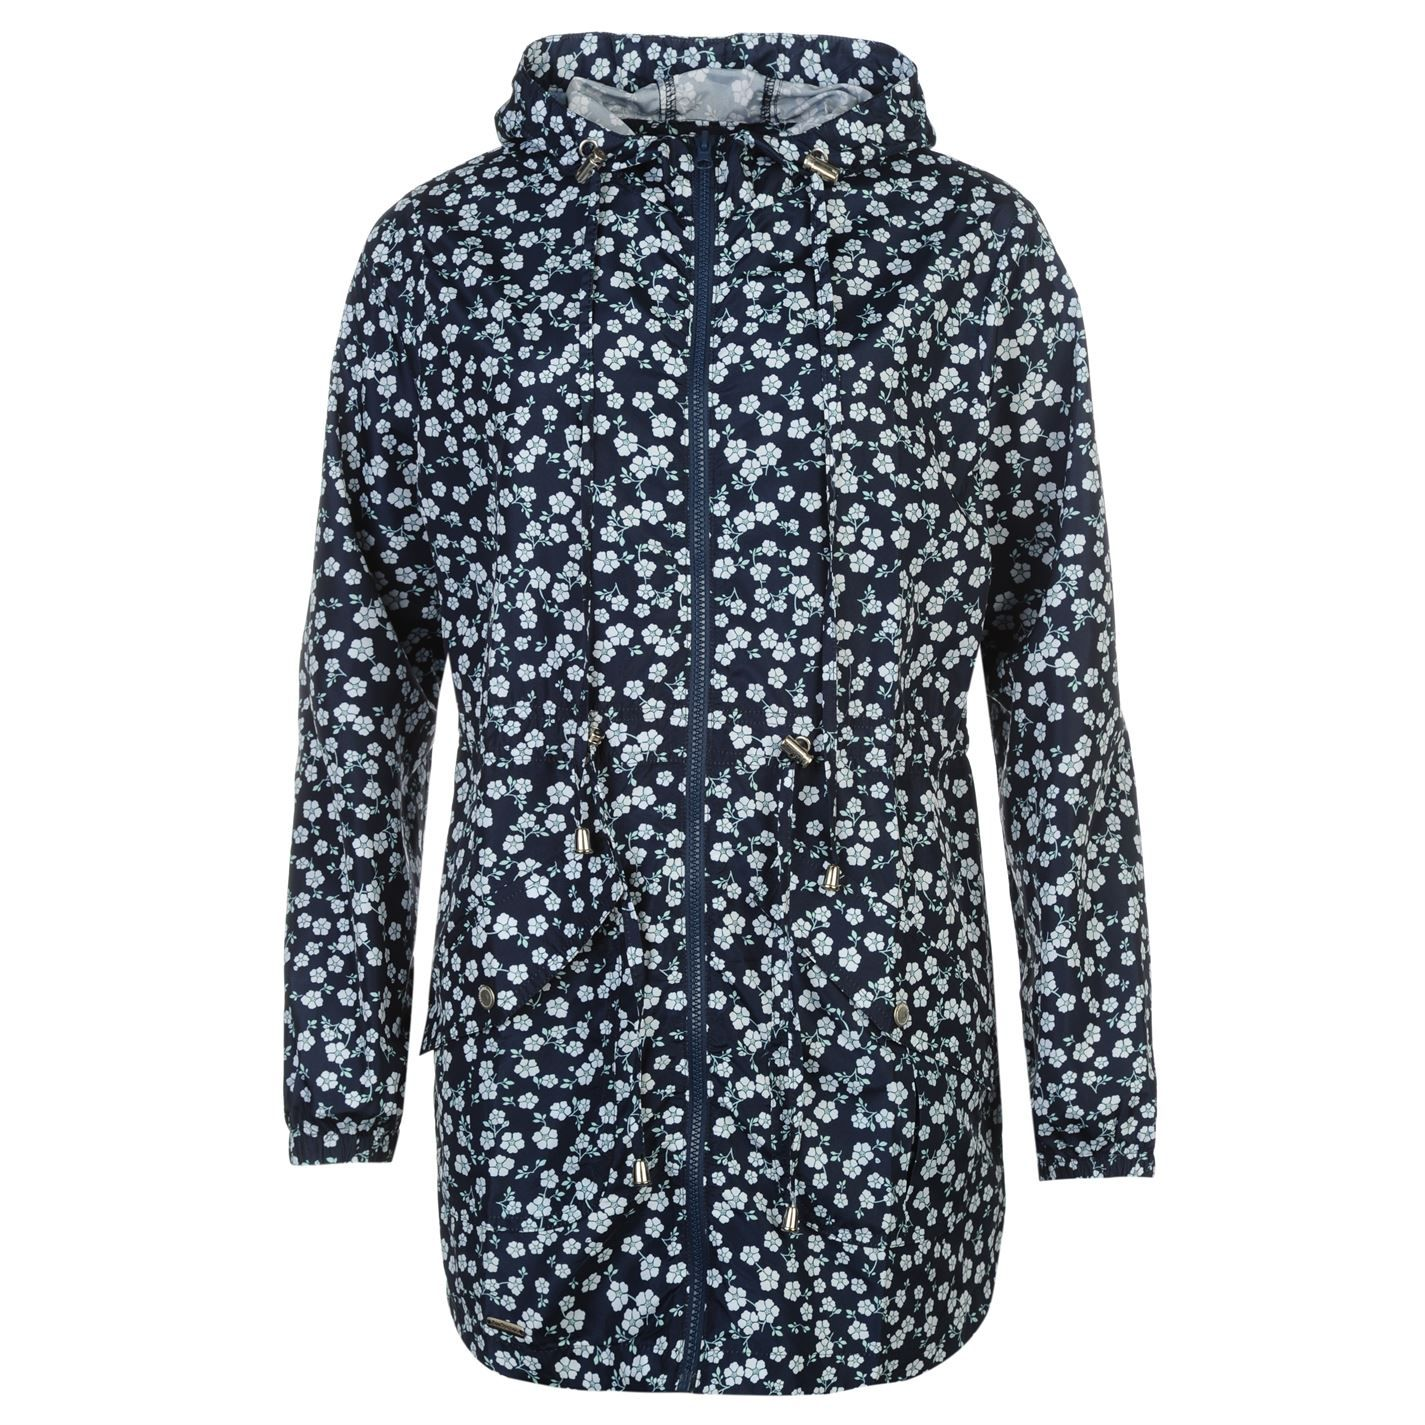 Lee Cooper Pack a Parka Ladies   The Lee Cooper Pack a Parka is perfect for festivals and day trips with its lightweight construction it can be packed away when not in use and safely stored in your bag. Designed with an all-over pattern it features long sleeves, a full length zip fastening and two